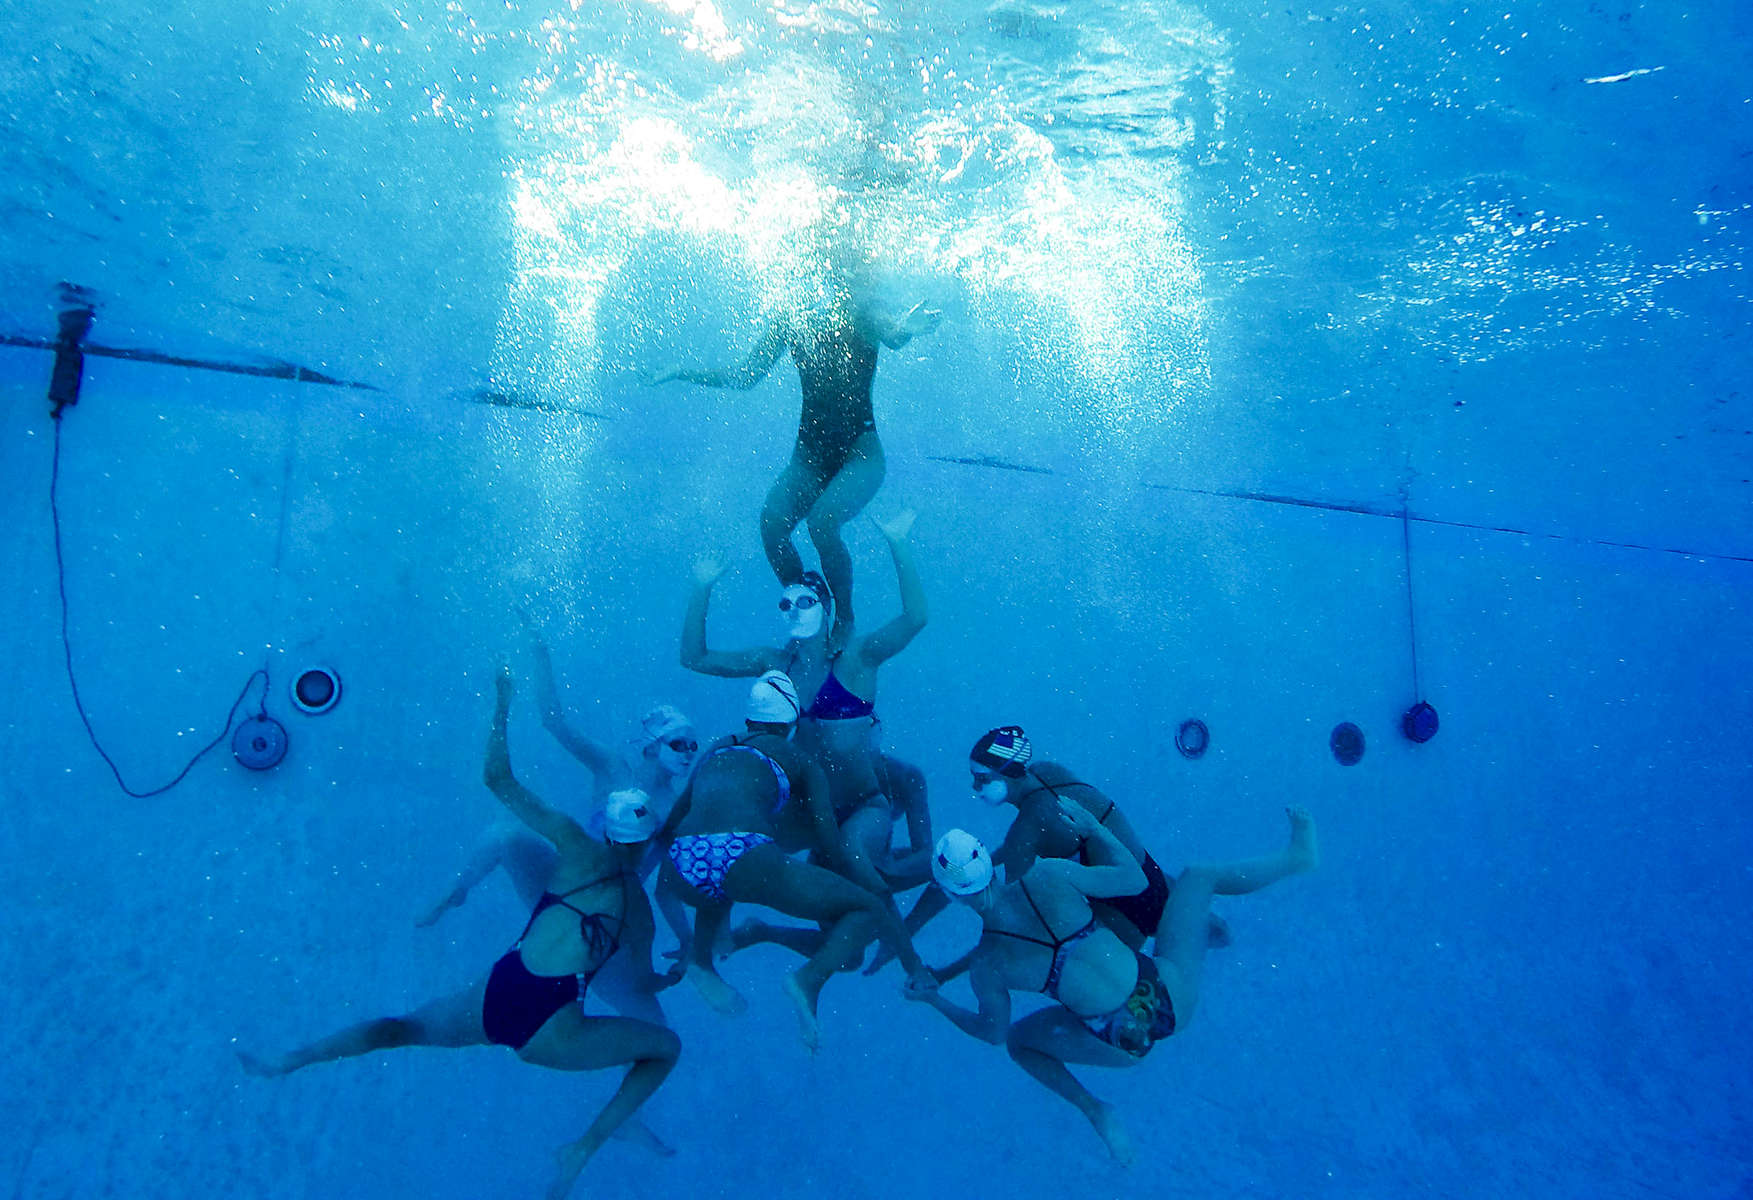 The US junior synchronized swimming team works on one of their lift where they lift two girls out of the water without touching the ground.